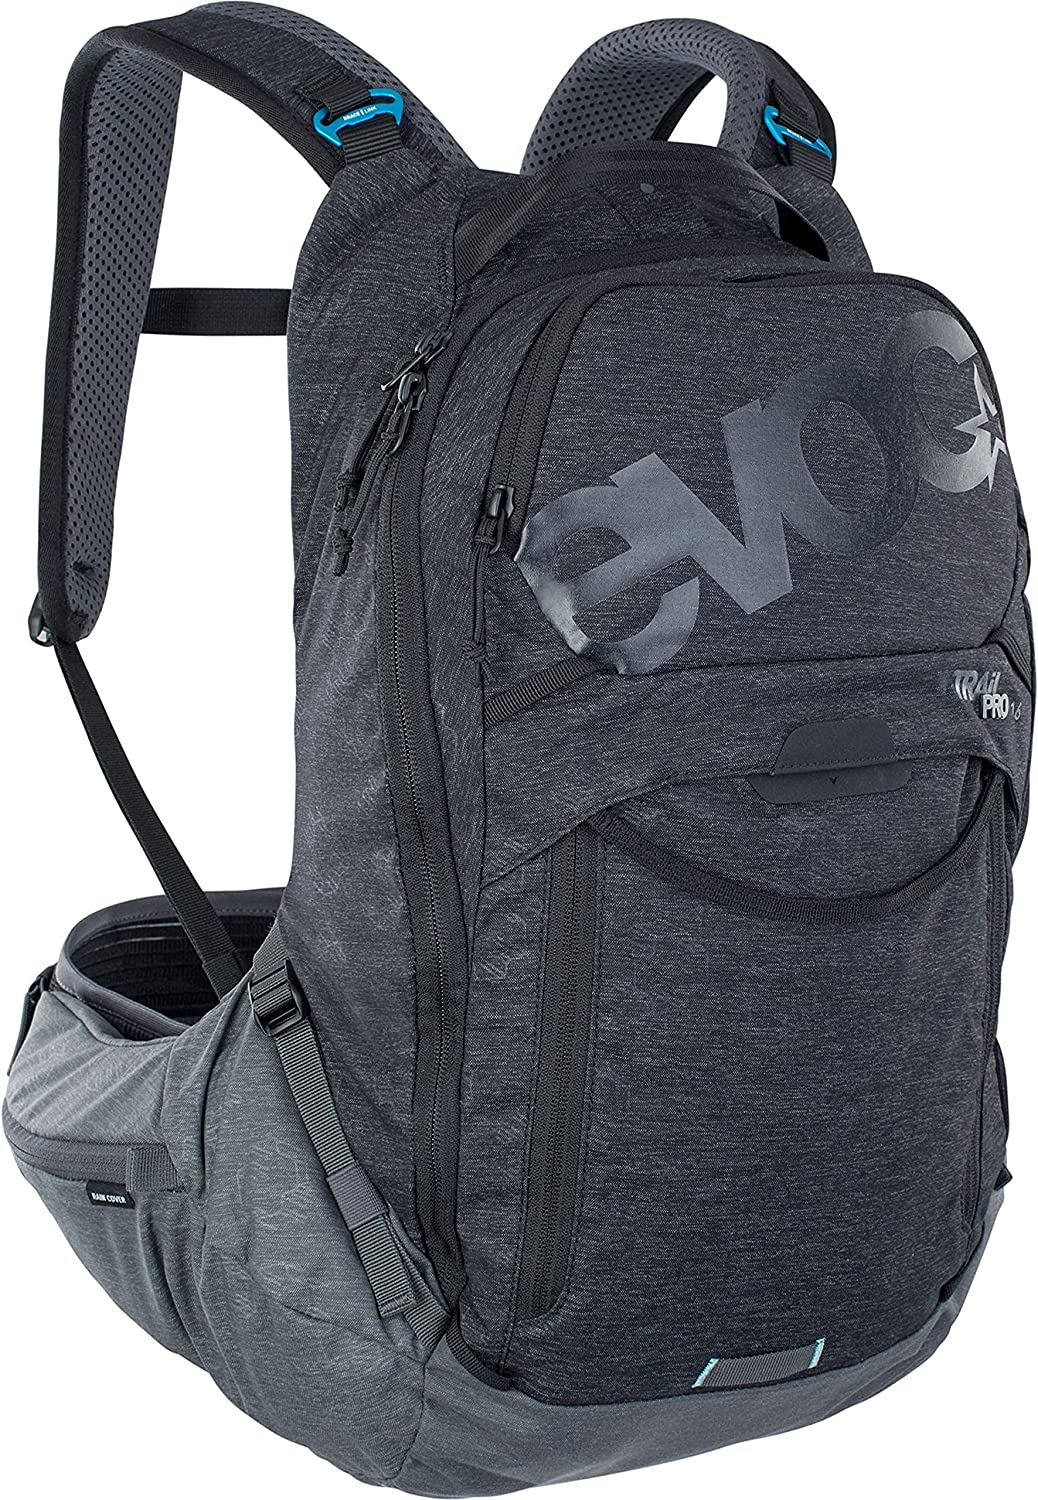 Evoc OFFer Max 70% OFF Trail Pro Protector Hydration M S Backpack